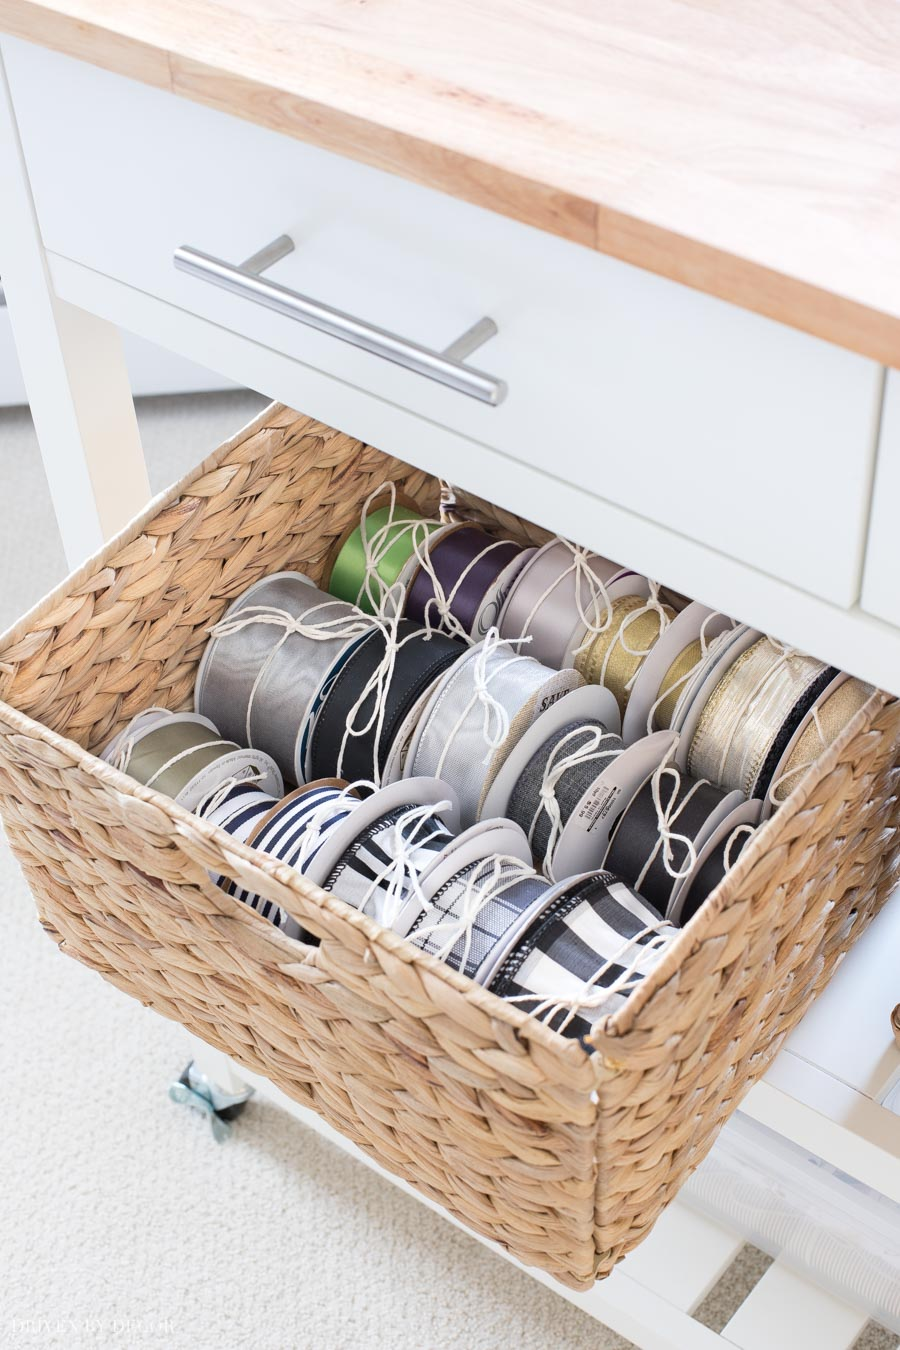 A woven basket holds spools of ribbon in this super cute and functional gift wrapping station!